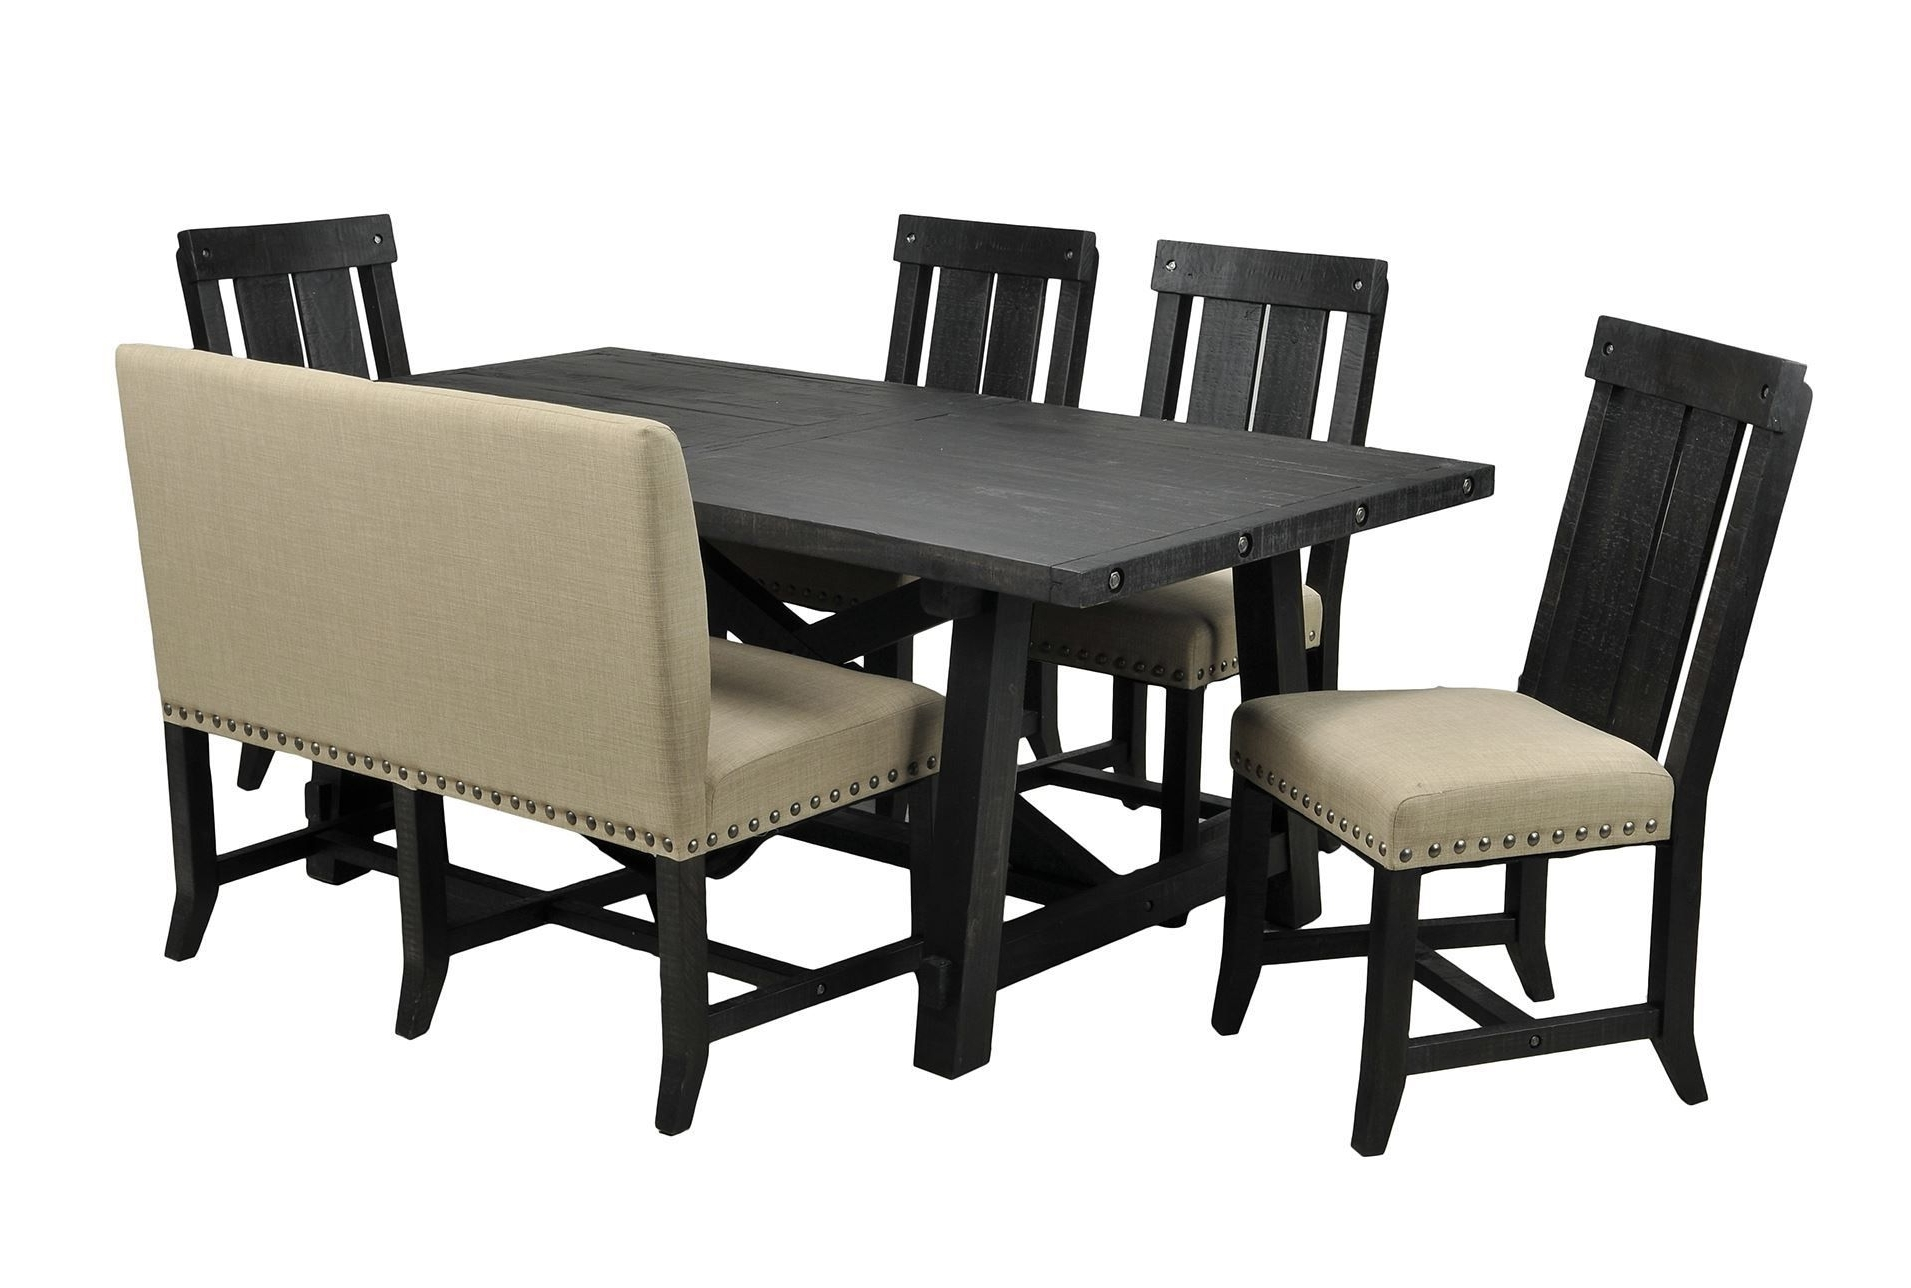 Jaxon 6 Piece Rectangle Dining Set W/bench & Wood Chairs, Café Intended For Recent Jaxon 7 Piece Rectangle Dining Sets With Upholstered Chairs (Gallery 4 of 25)